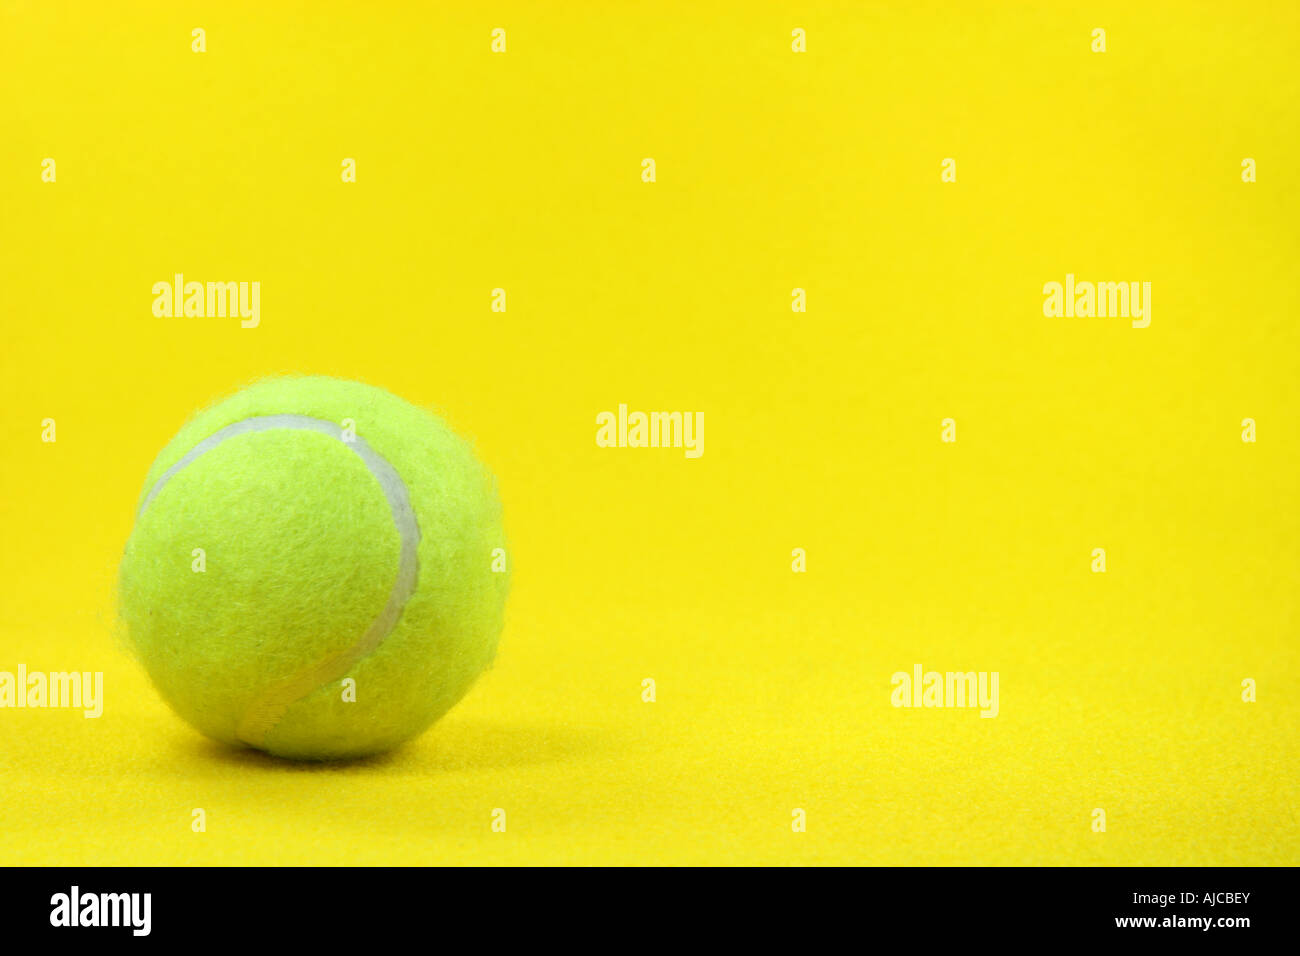 One Yellow Tennis Ball In The Left Side With Yellow Background